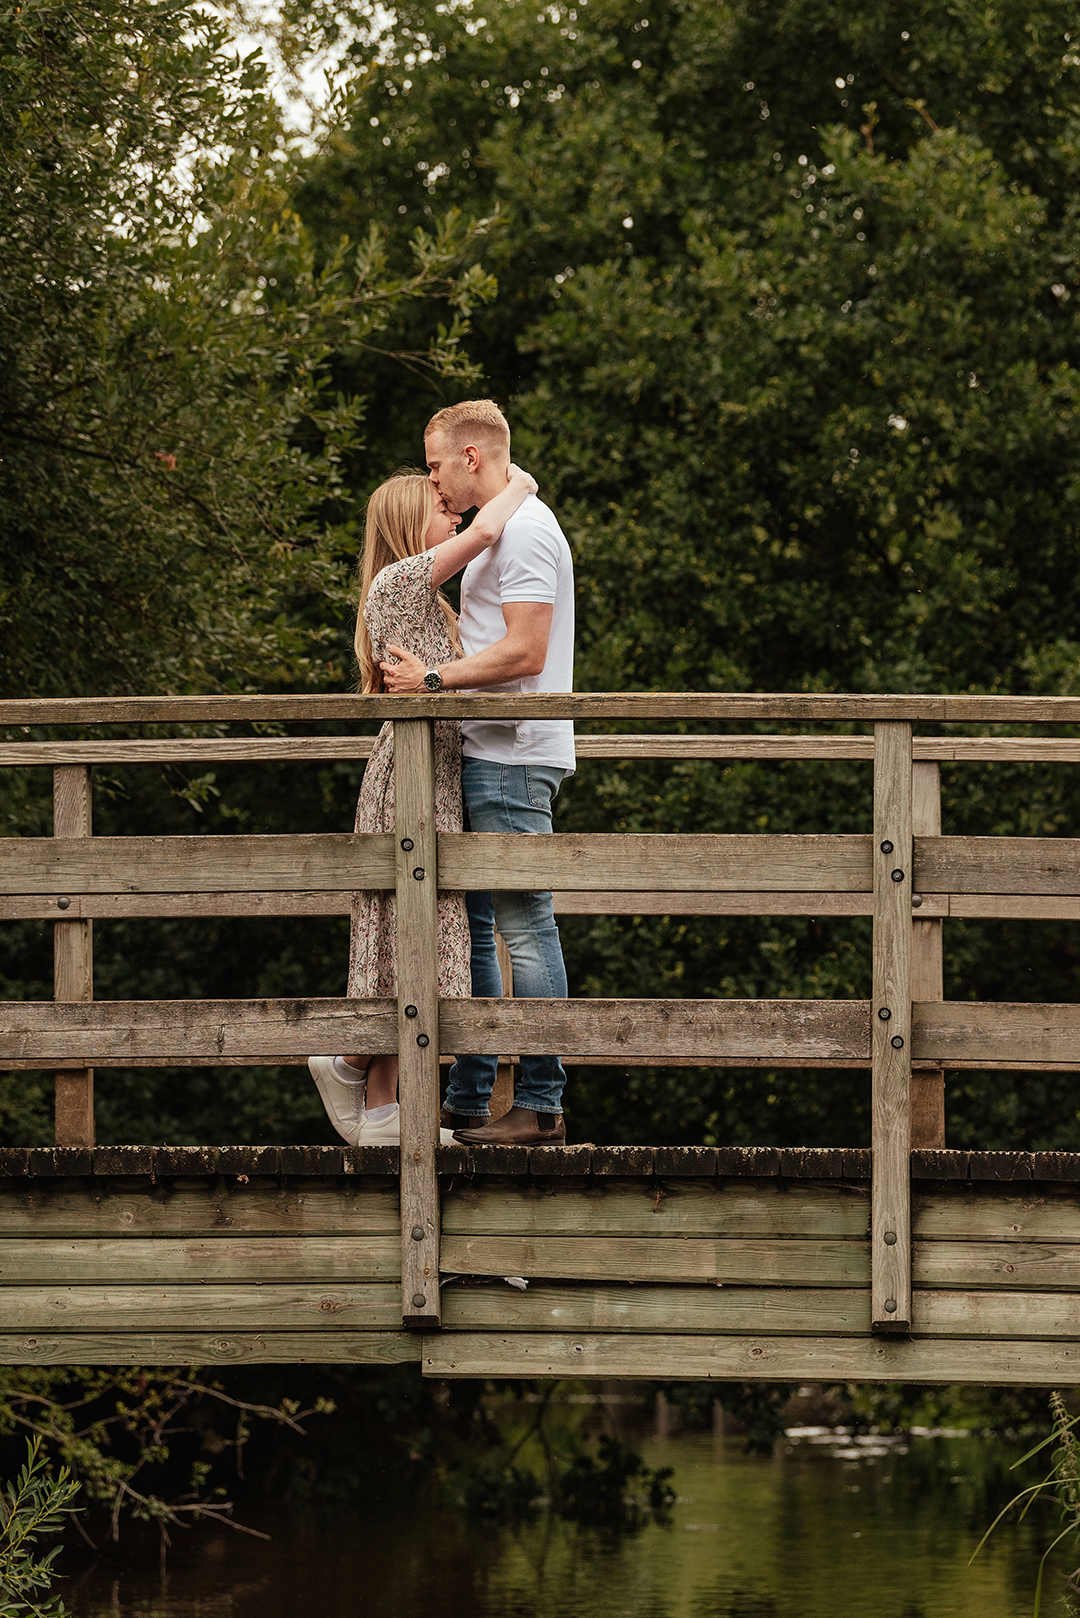 Bride pulls groom in close on bridge in Natural Pre Wedding Photoshoot at Stanborough Lake